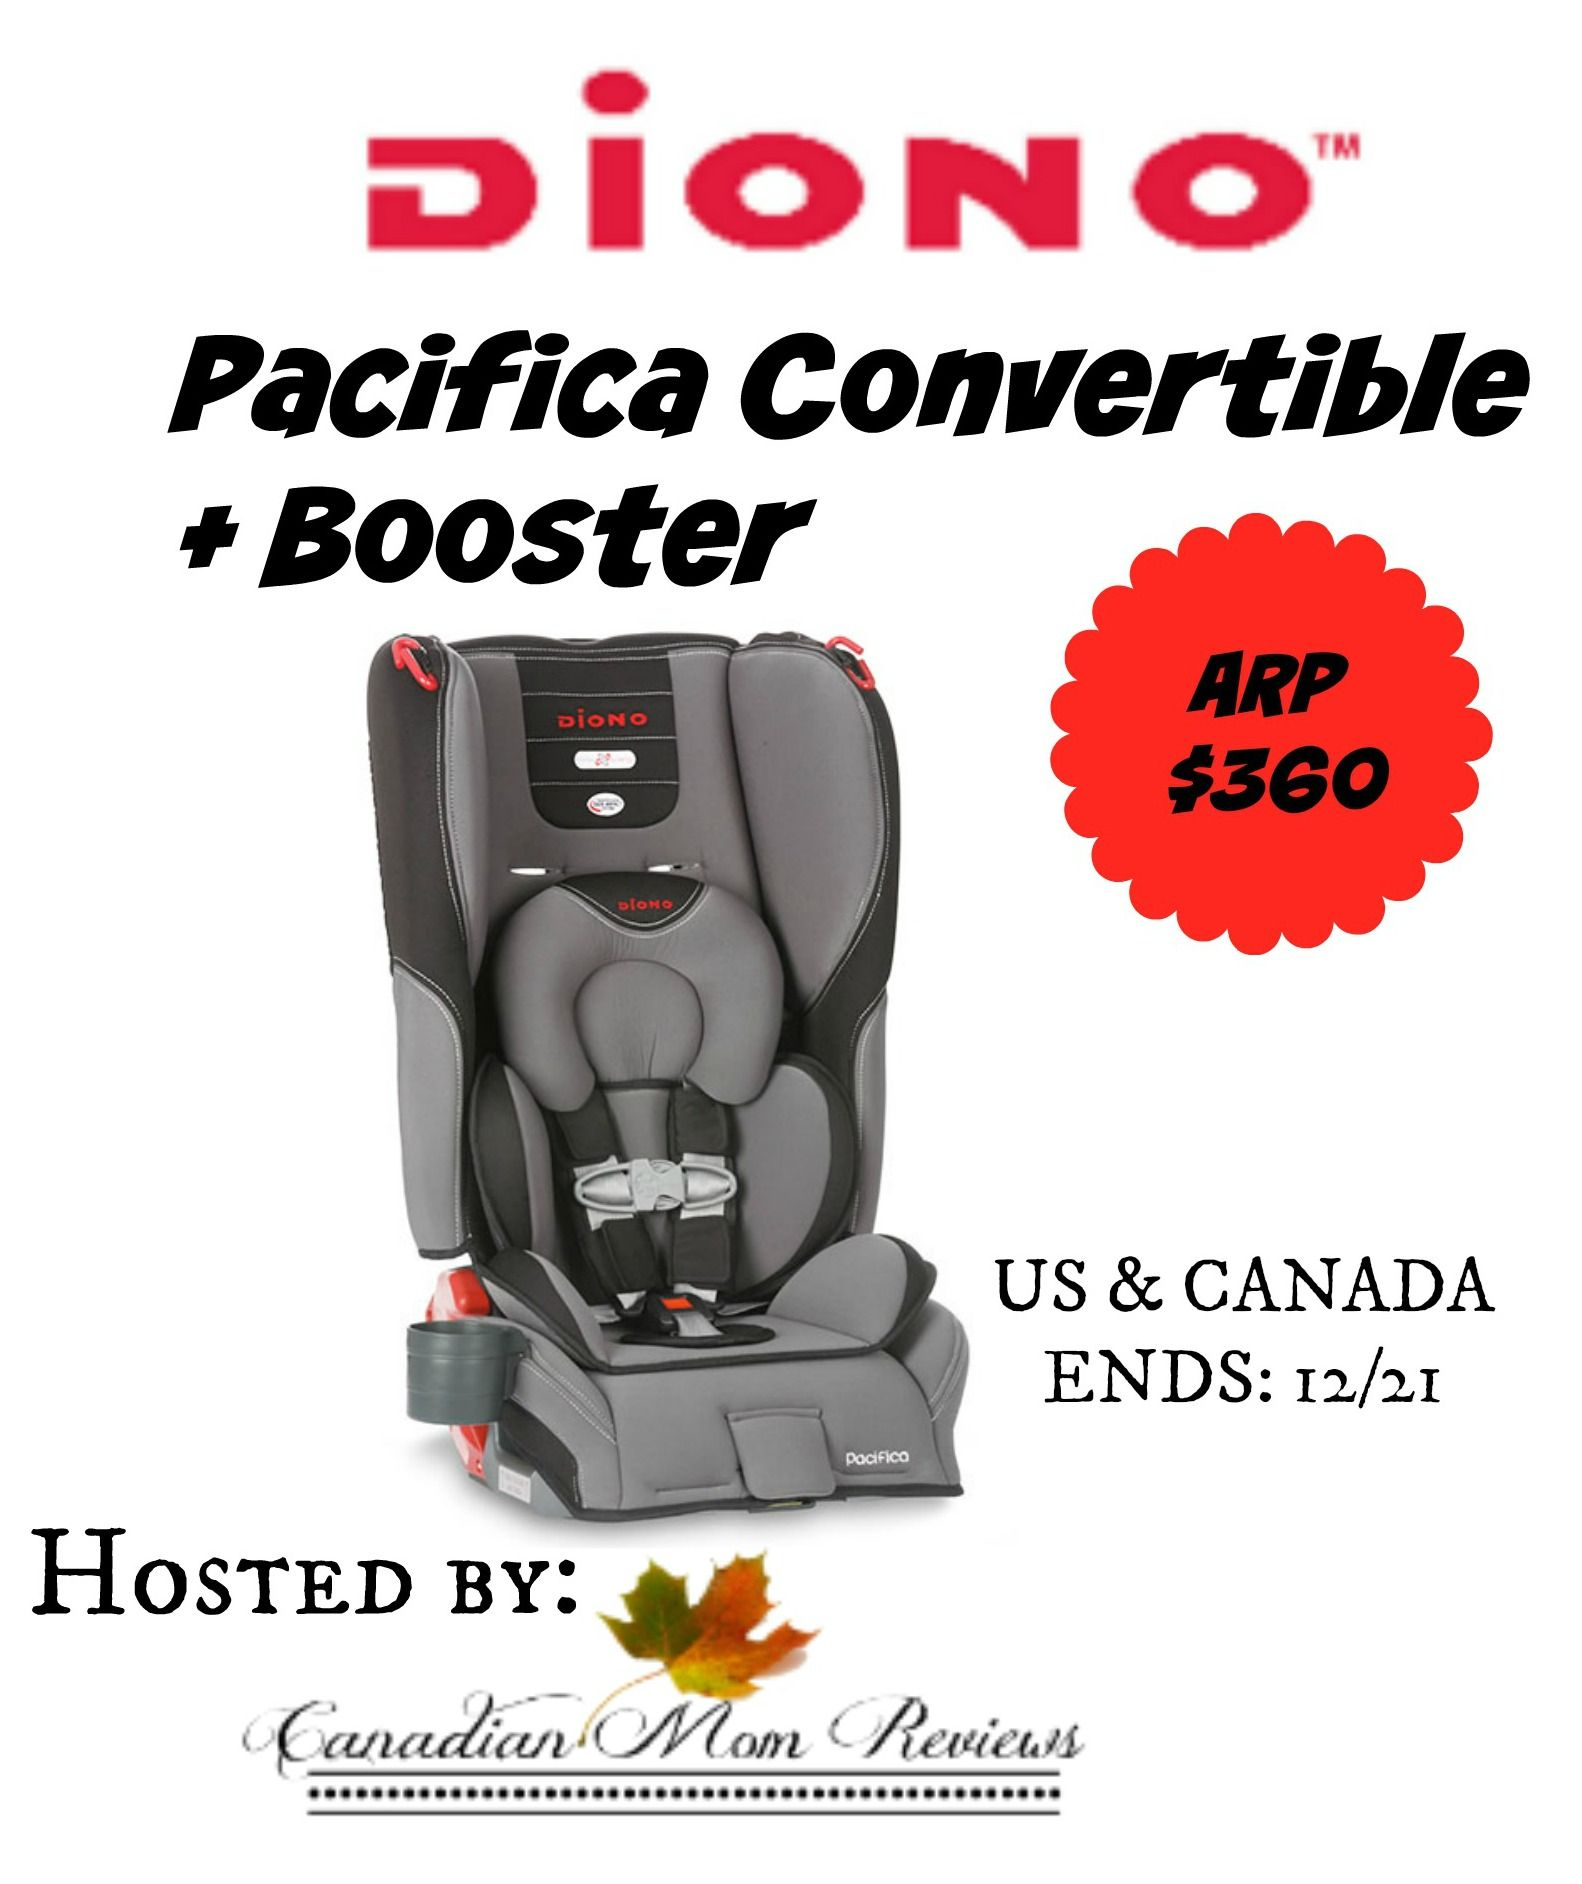 360 Pacifica Convertible+ Booster Giveaway US/Can